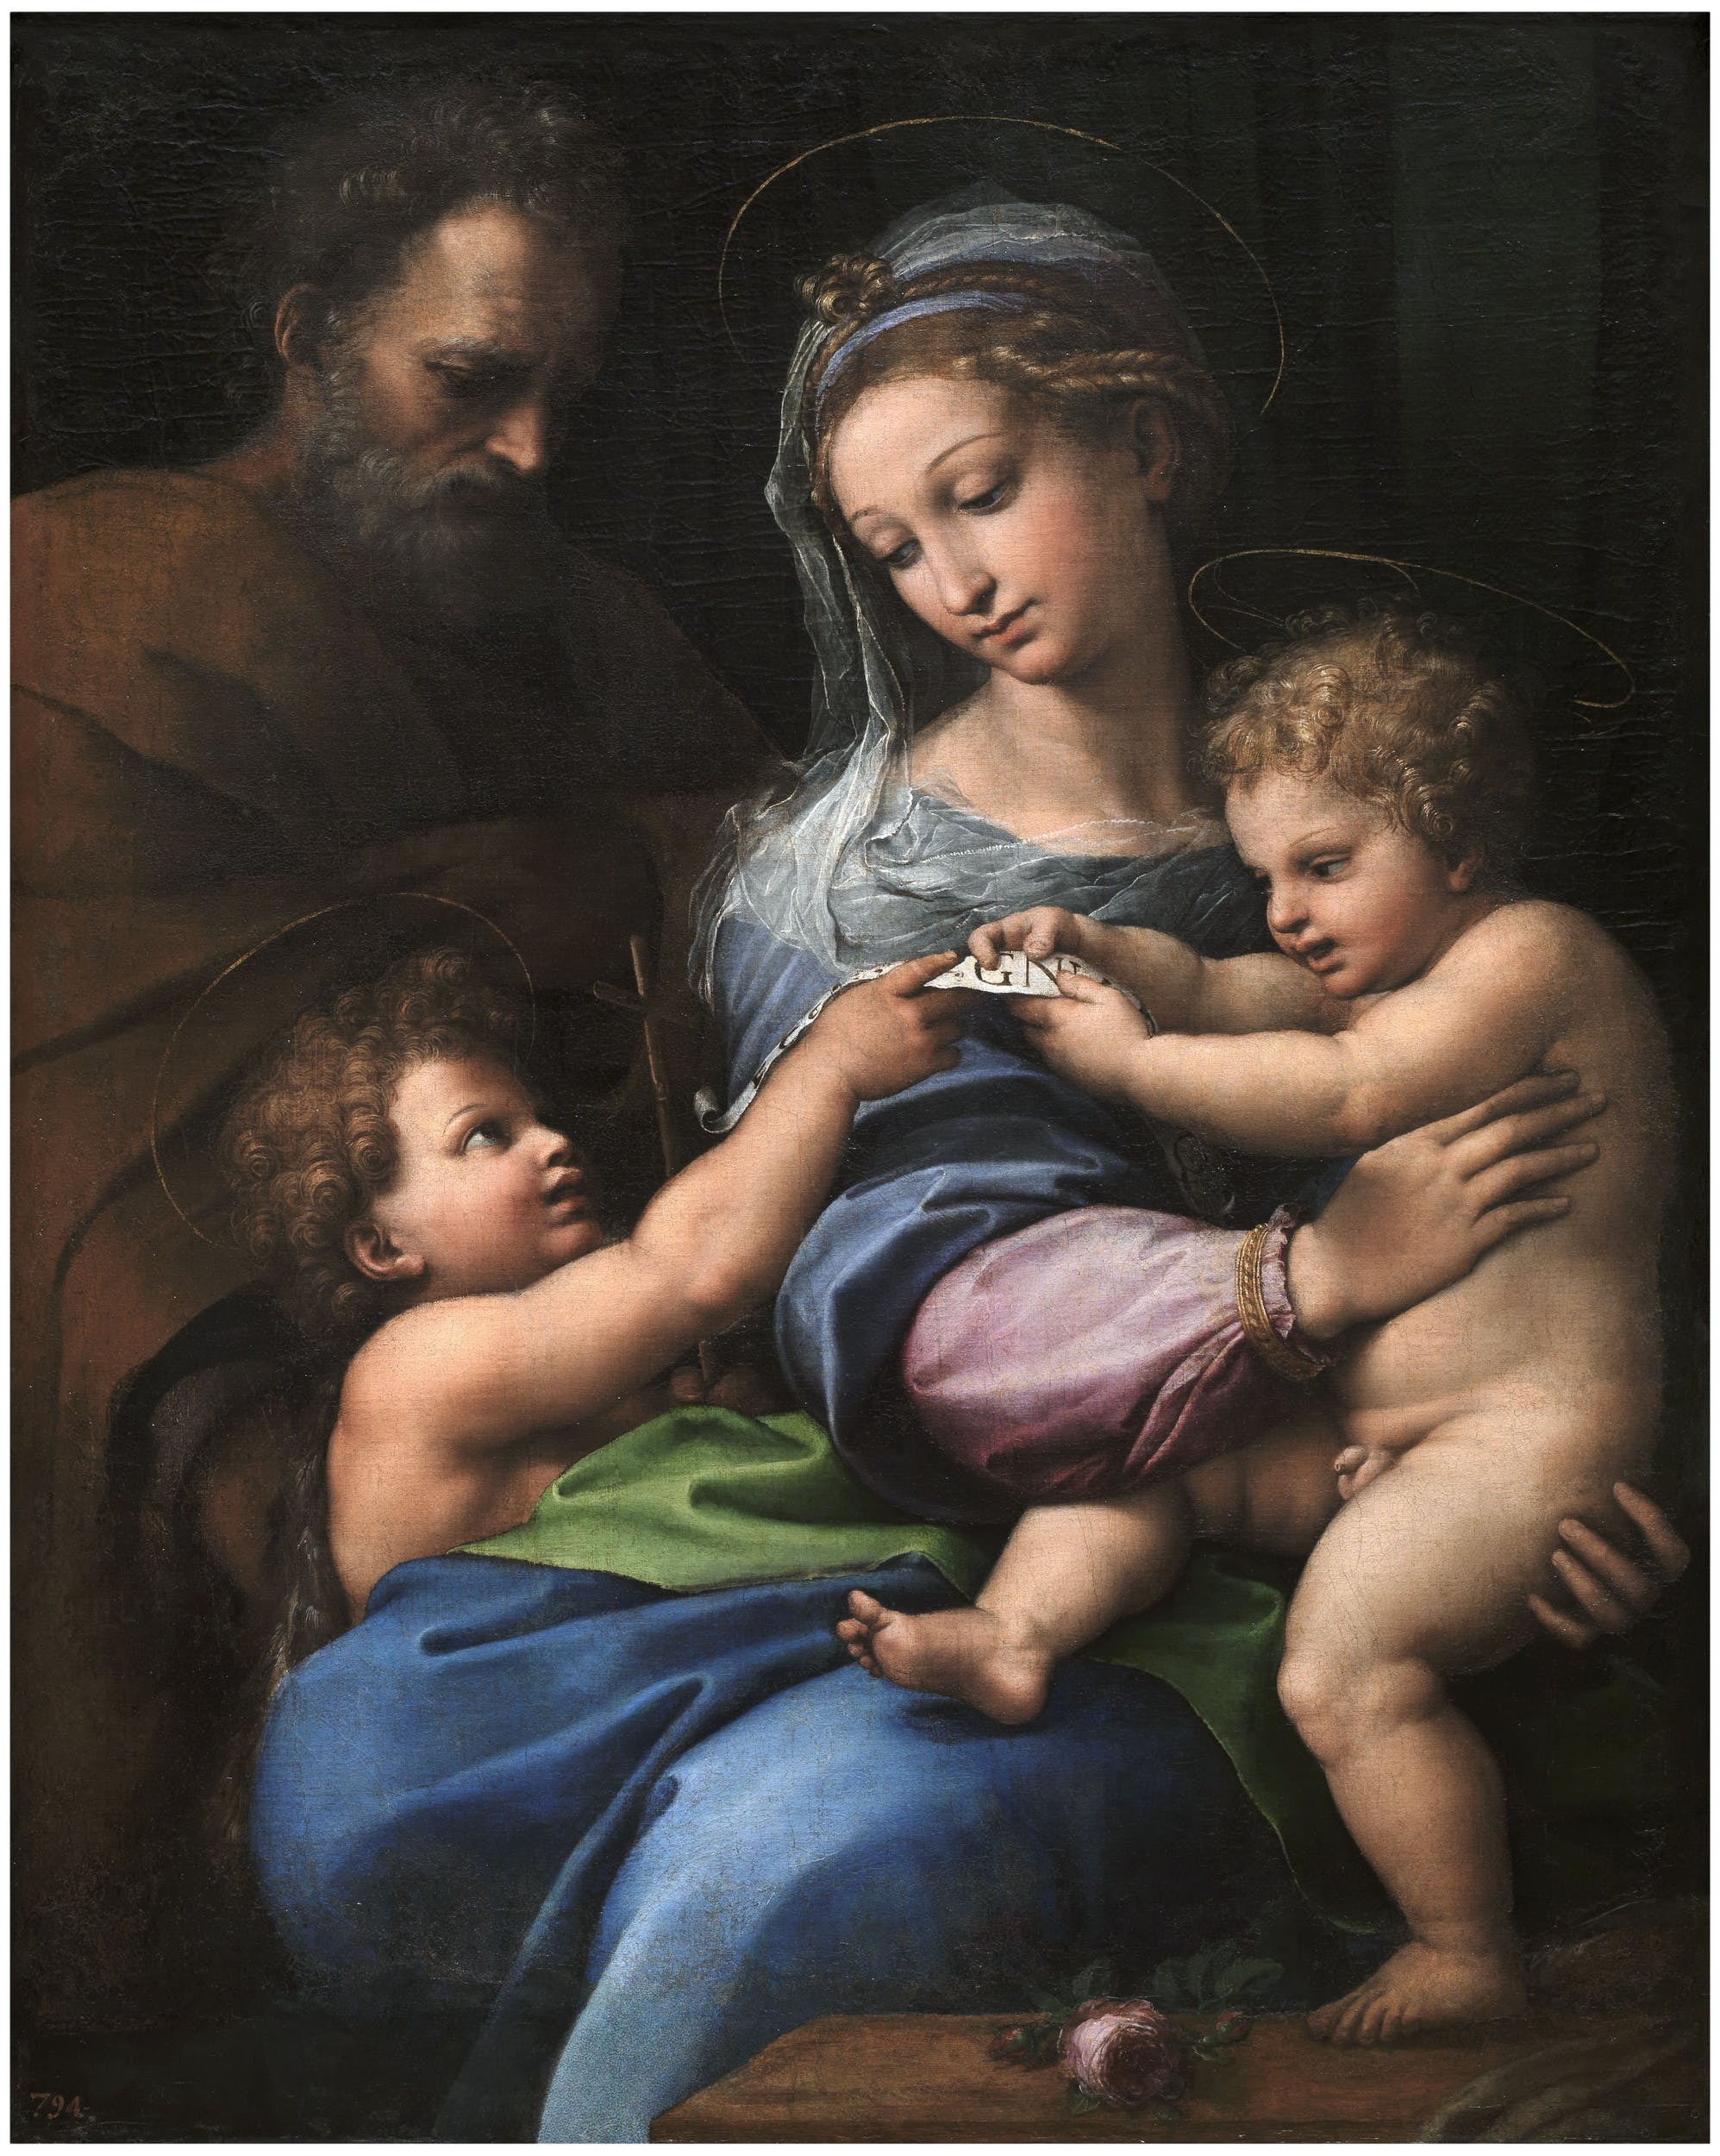 Raffaello  La Madonna della Rosa Madonna of the Rose 1518-1520 olio su tavola trasportata su tela / oil on panel transferred to canvas Madrid, Museo Nacional del Prado